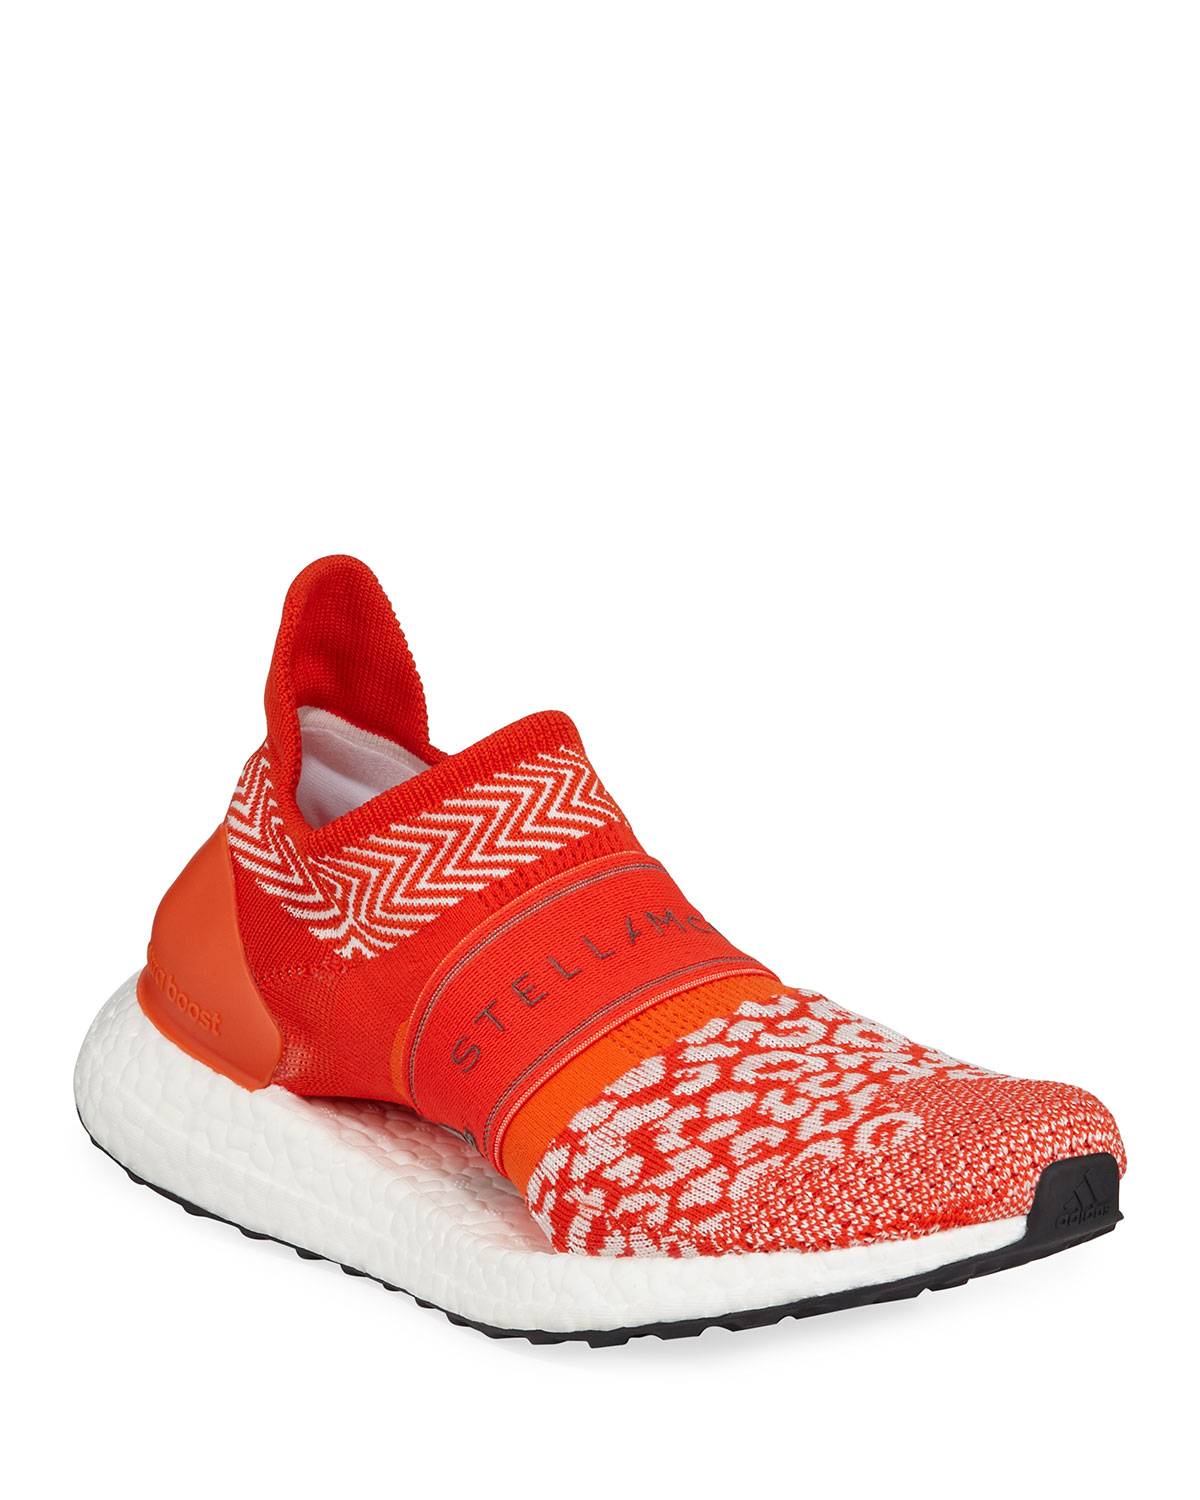 check out 67d42 0537a adidas by Stella McCartney UltraBoost X 3D Sneakers